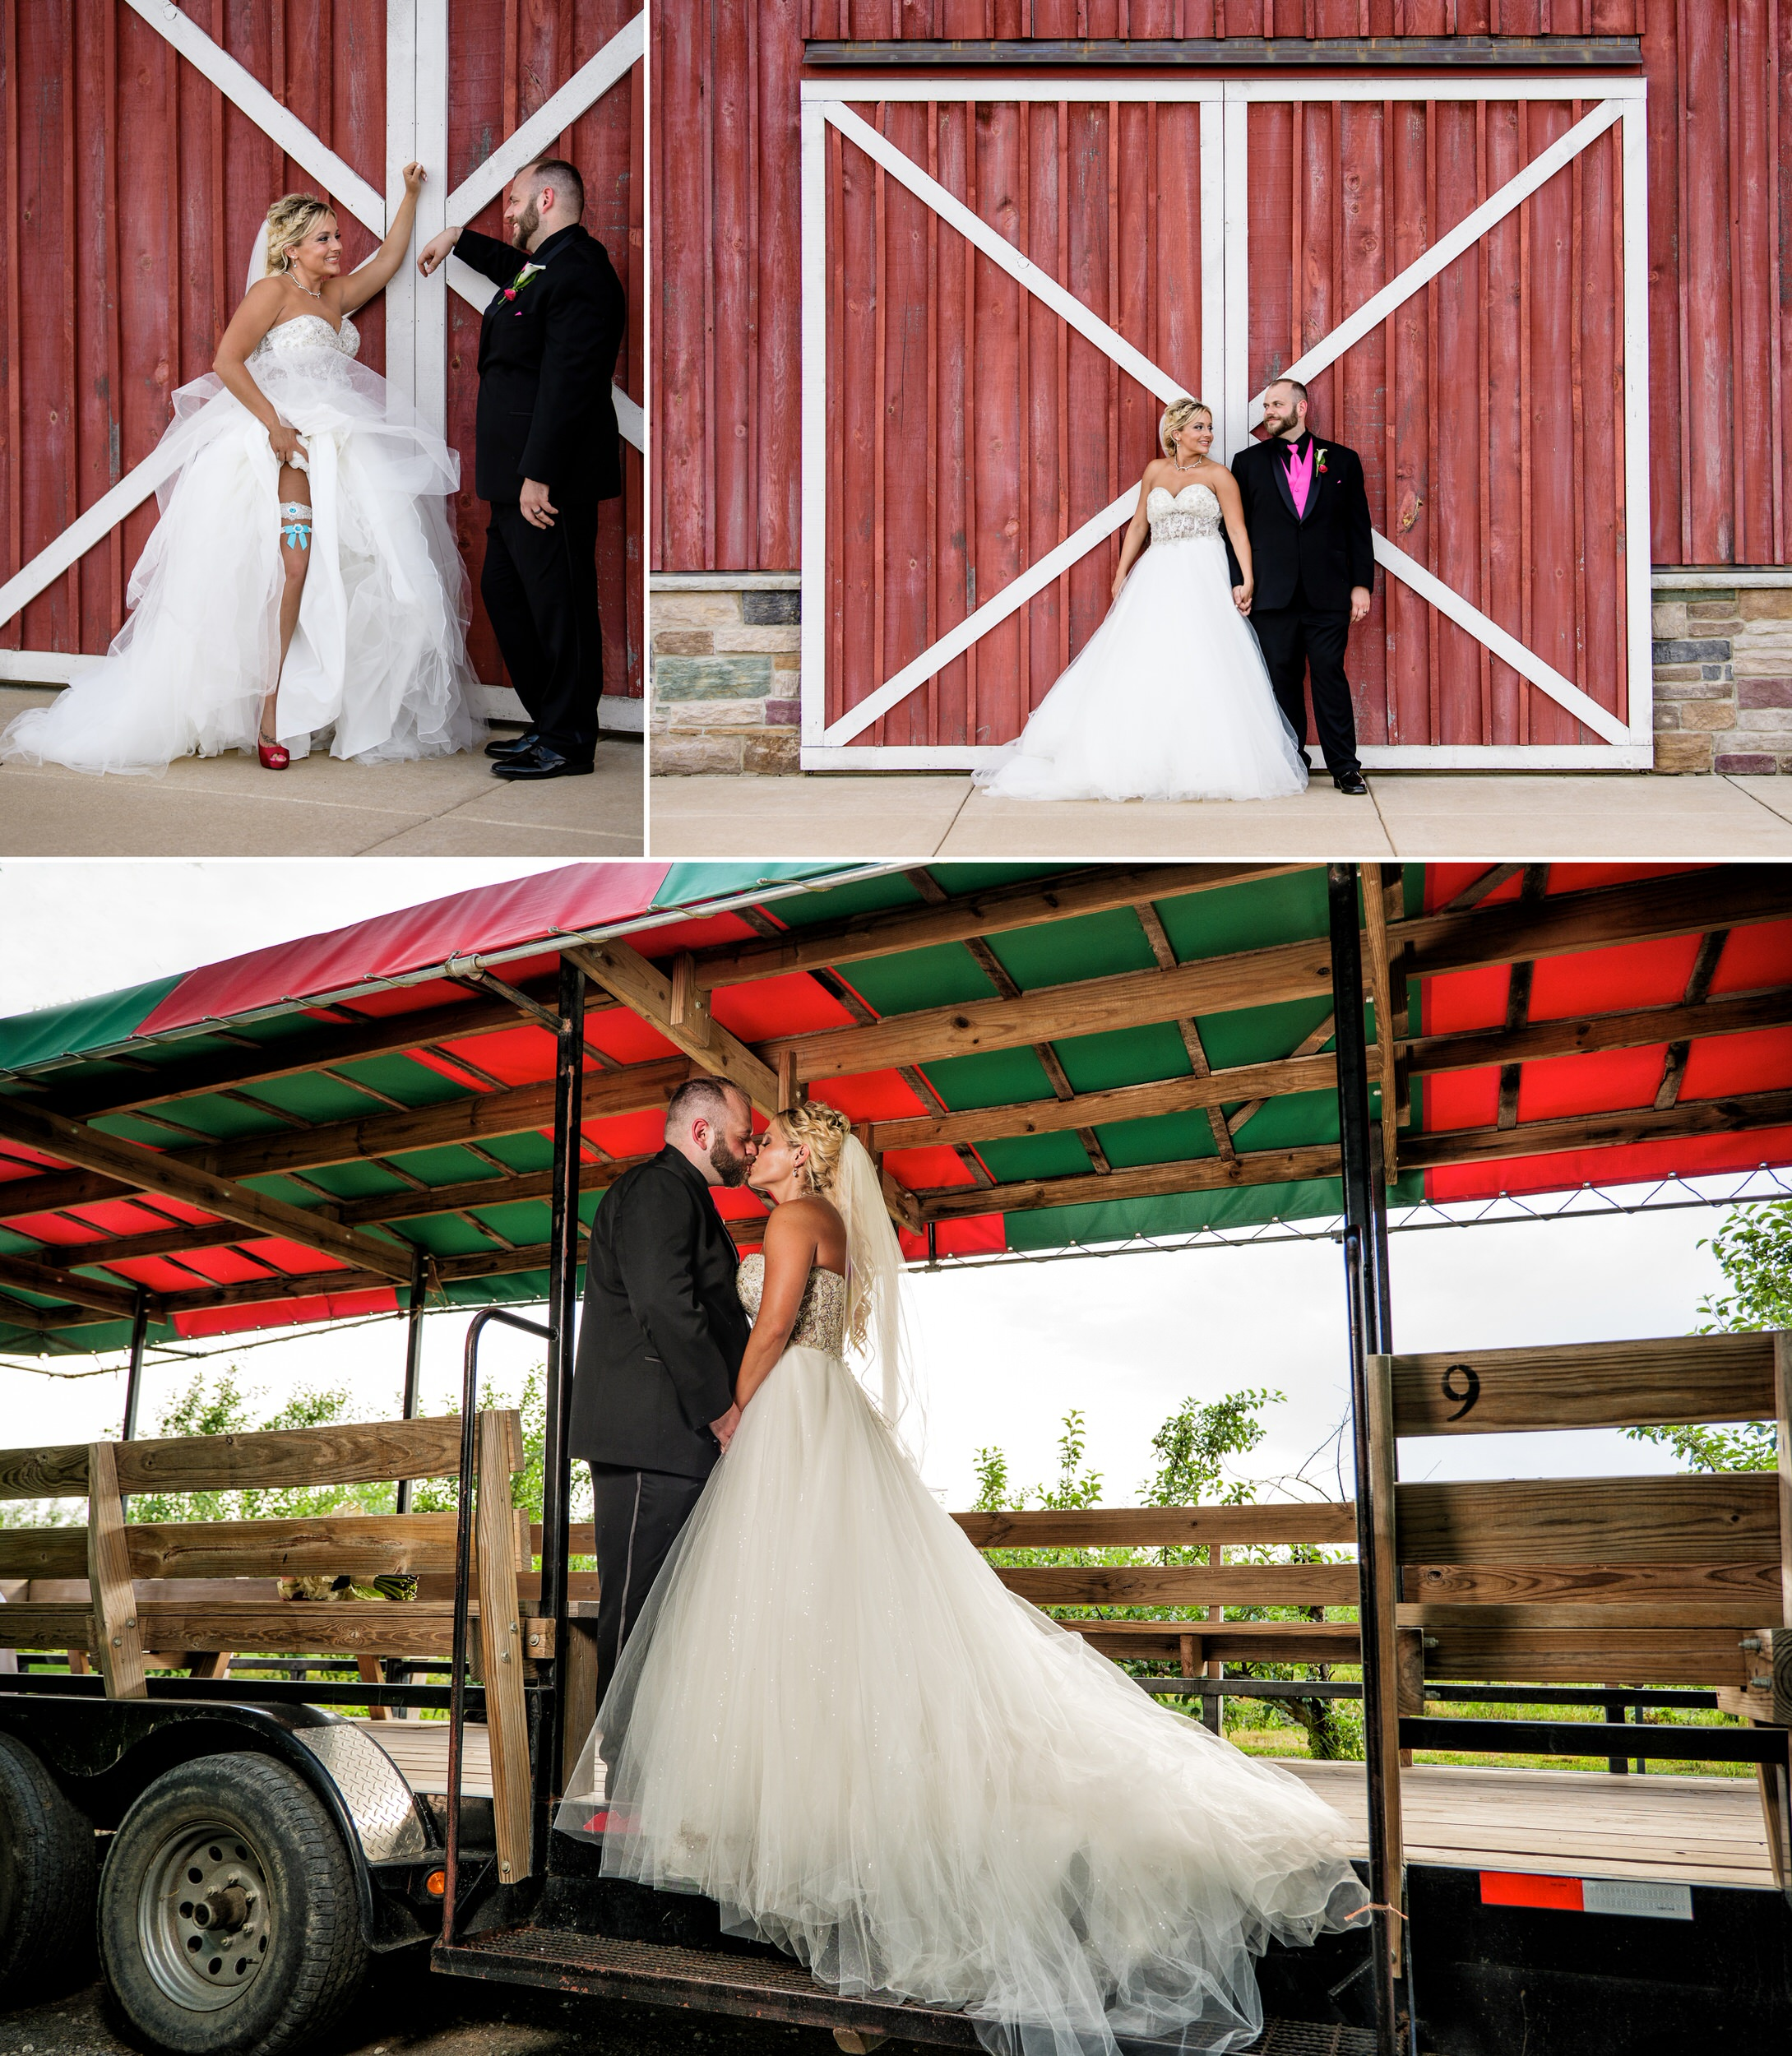 Rustic wedding photos at County Line Orchard.